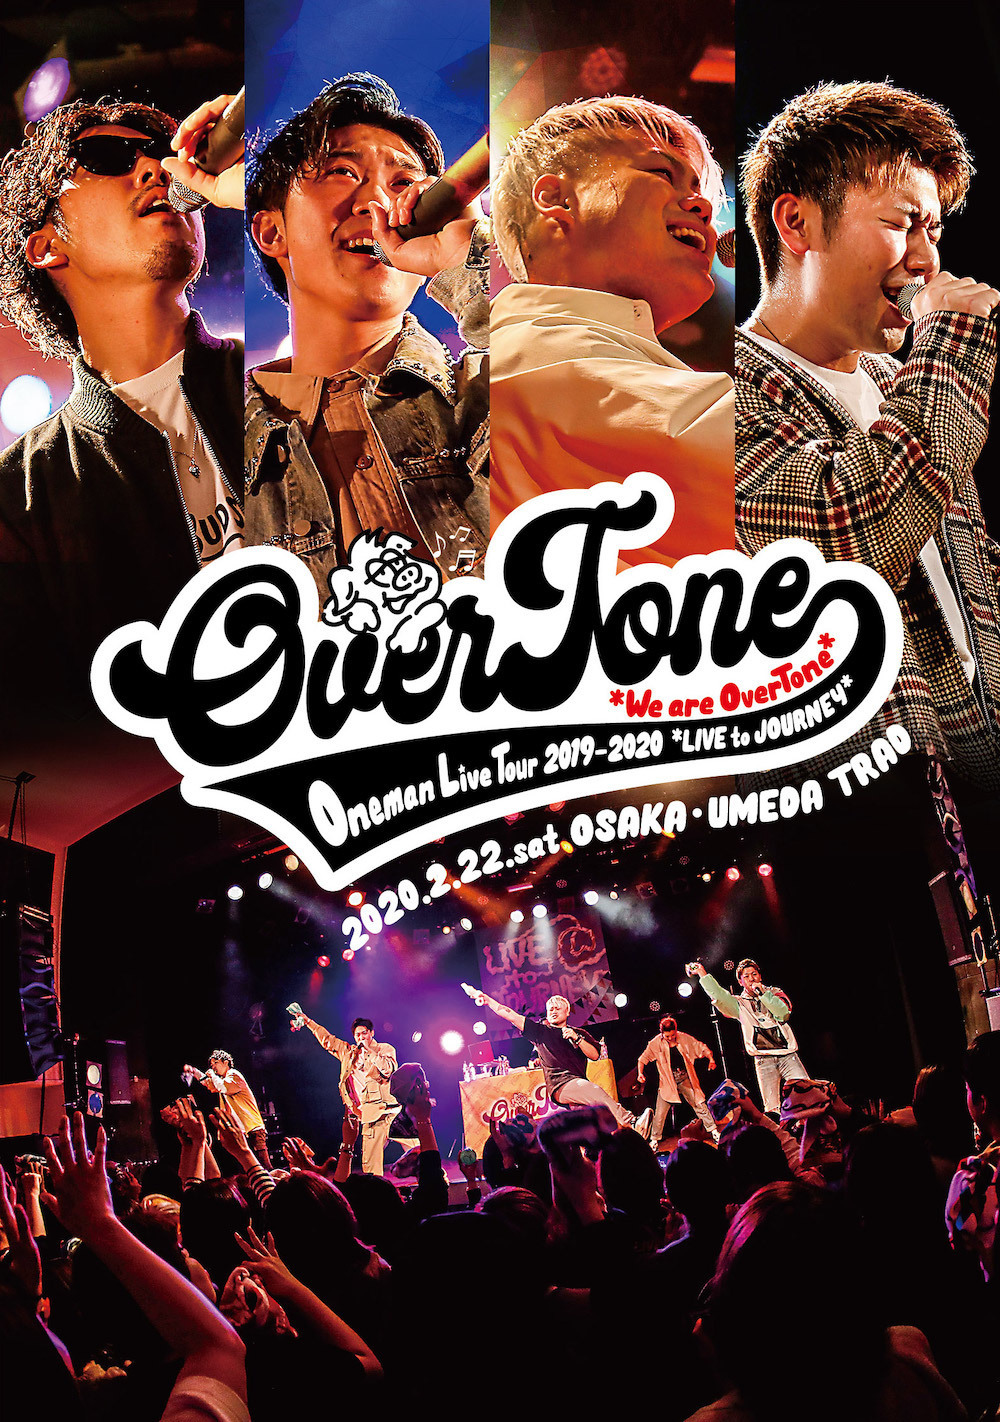 【LIVE DVD】OverTone Live Tour 2019→2020〜LIVE to JOURNEY〜@大阪umeda TRAD